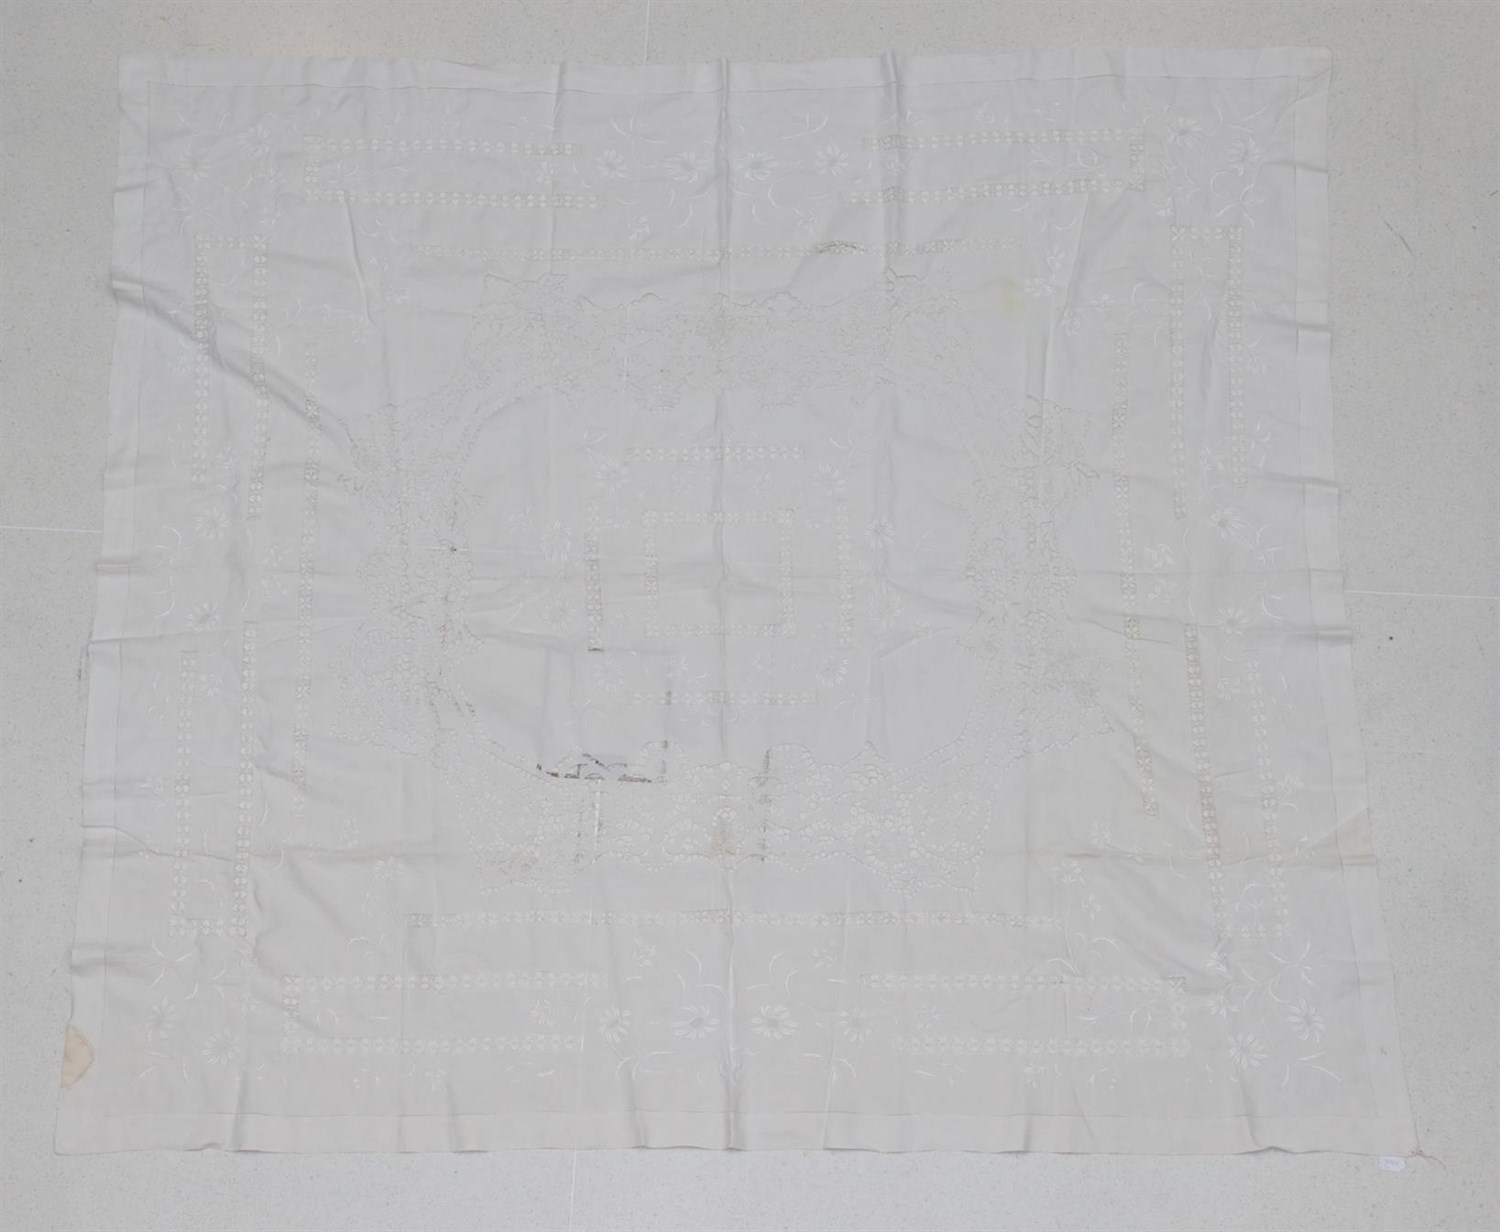 Lot 6027 - Large Early 20th Century White Linen Table Cloth, with drawn thread work, lace inserts and...